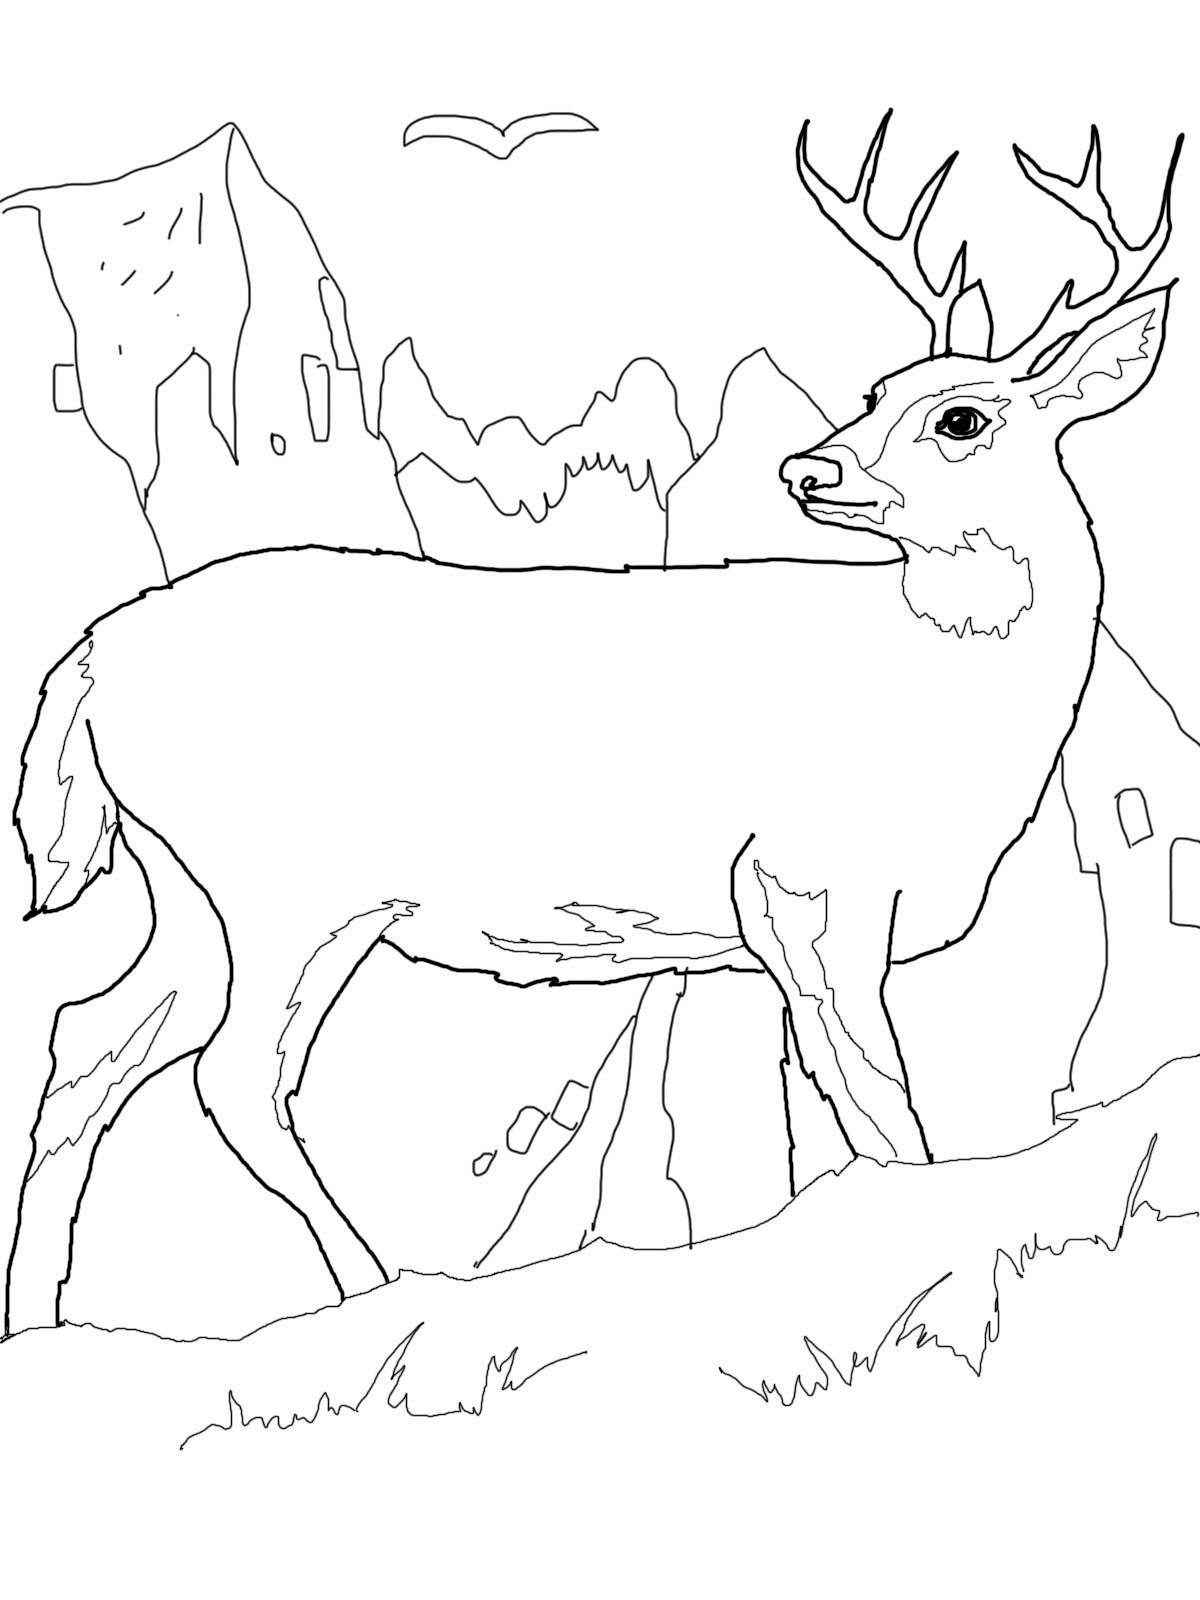 Free coloring pages realistic animals - Deer Coloring Pages Pictures